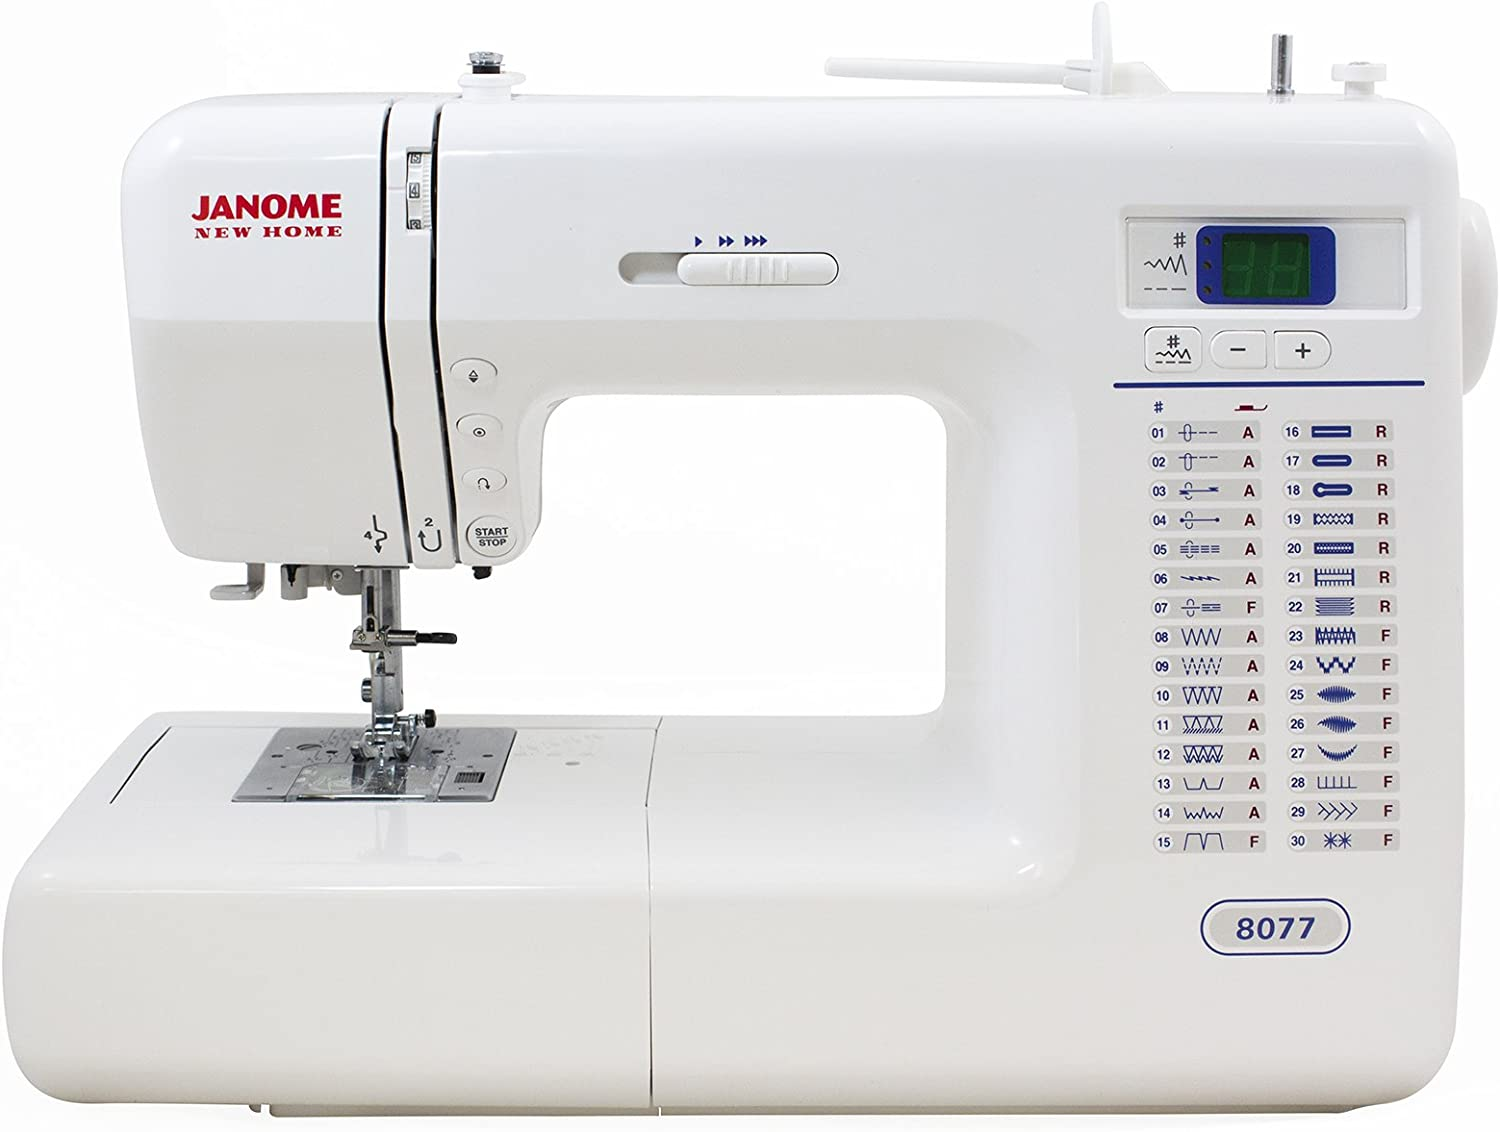 Intuitive control panel: Janome 8077 Computerized Sewing Machine